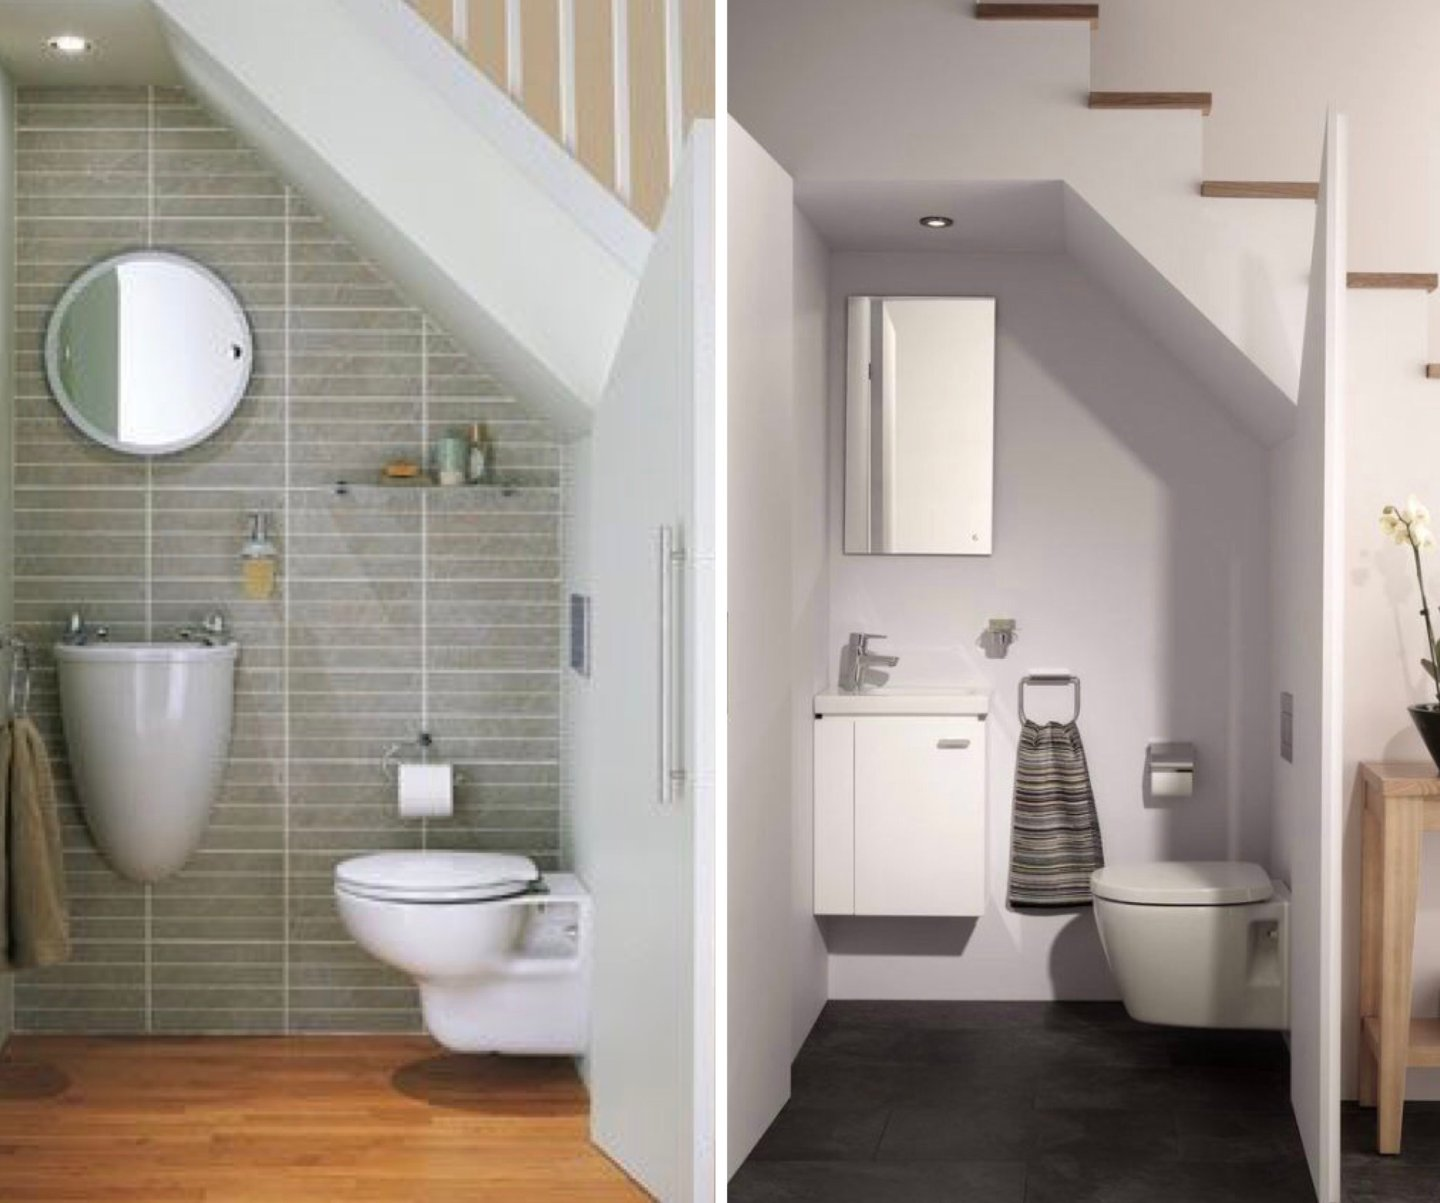 Toilet on the left -  www.gurudecor.com  Toilet on the right -  www.housebeautiful.com